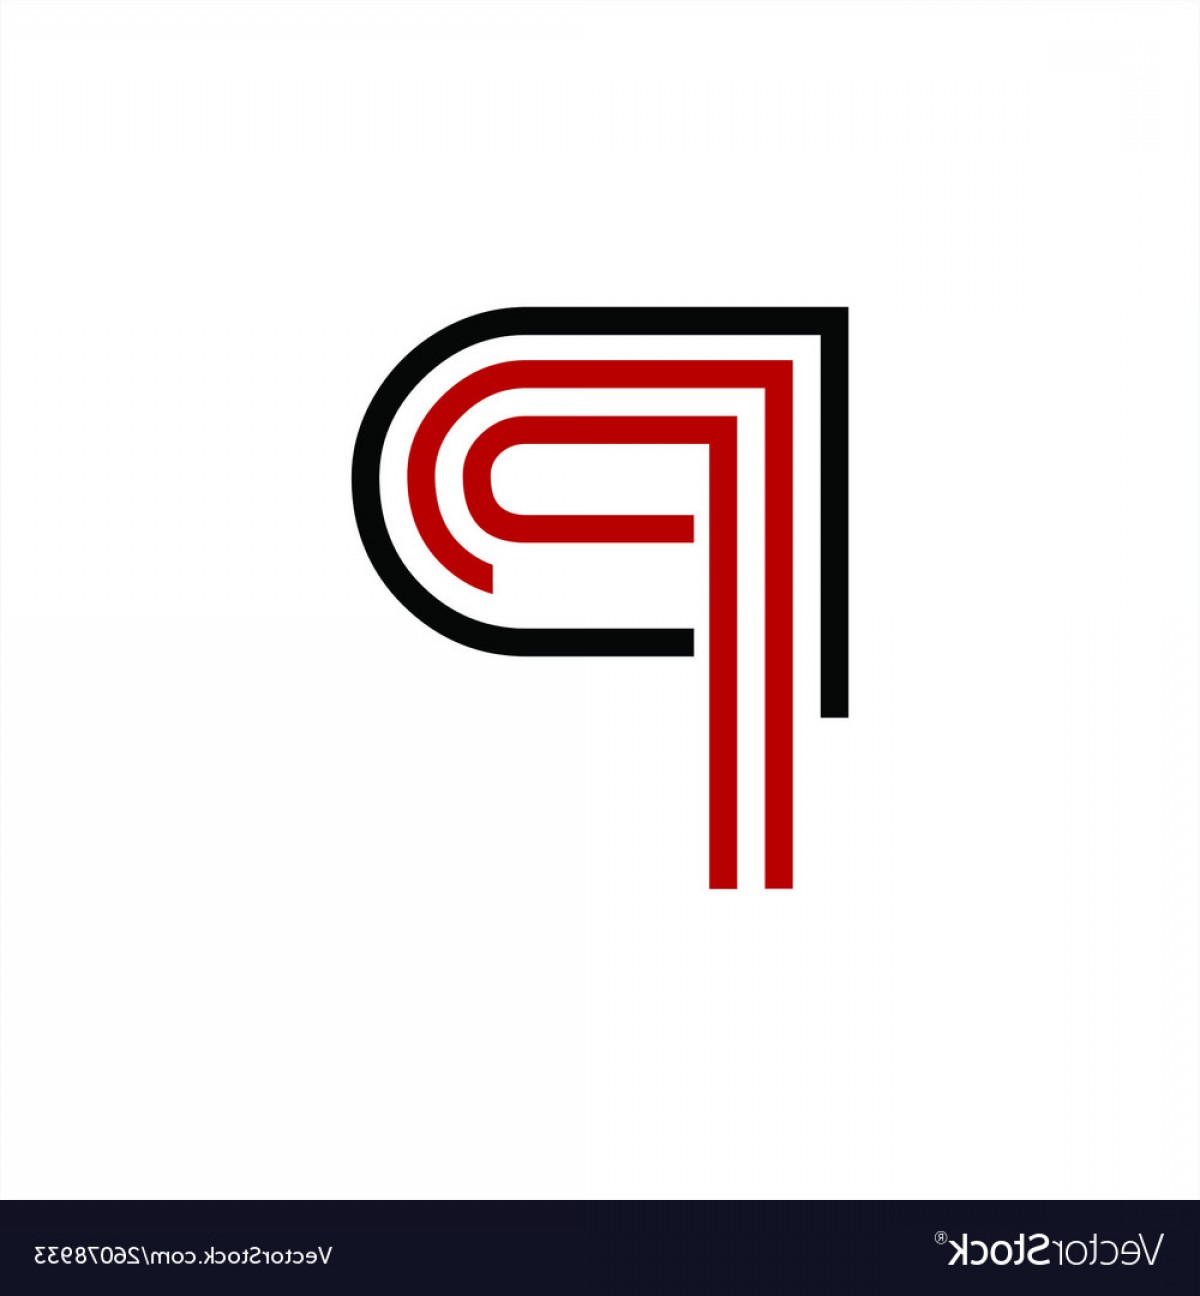 BBB Logo In Vector Form: Simple P Dp Pd Ppp Initials Line Art Company Logo Vector